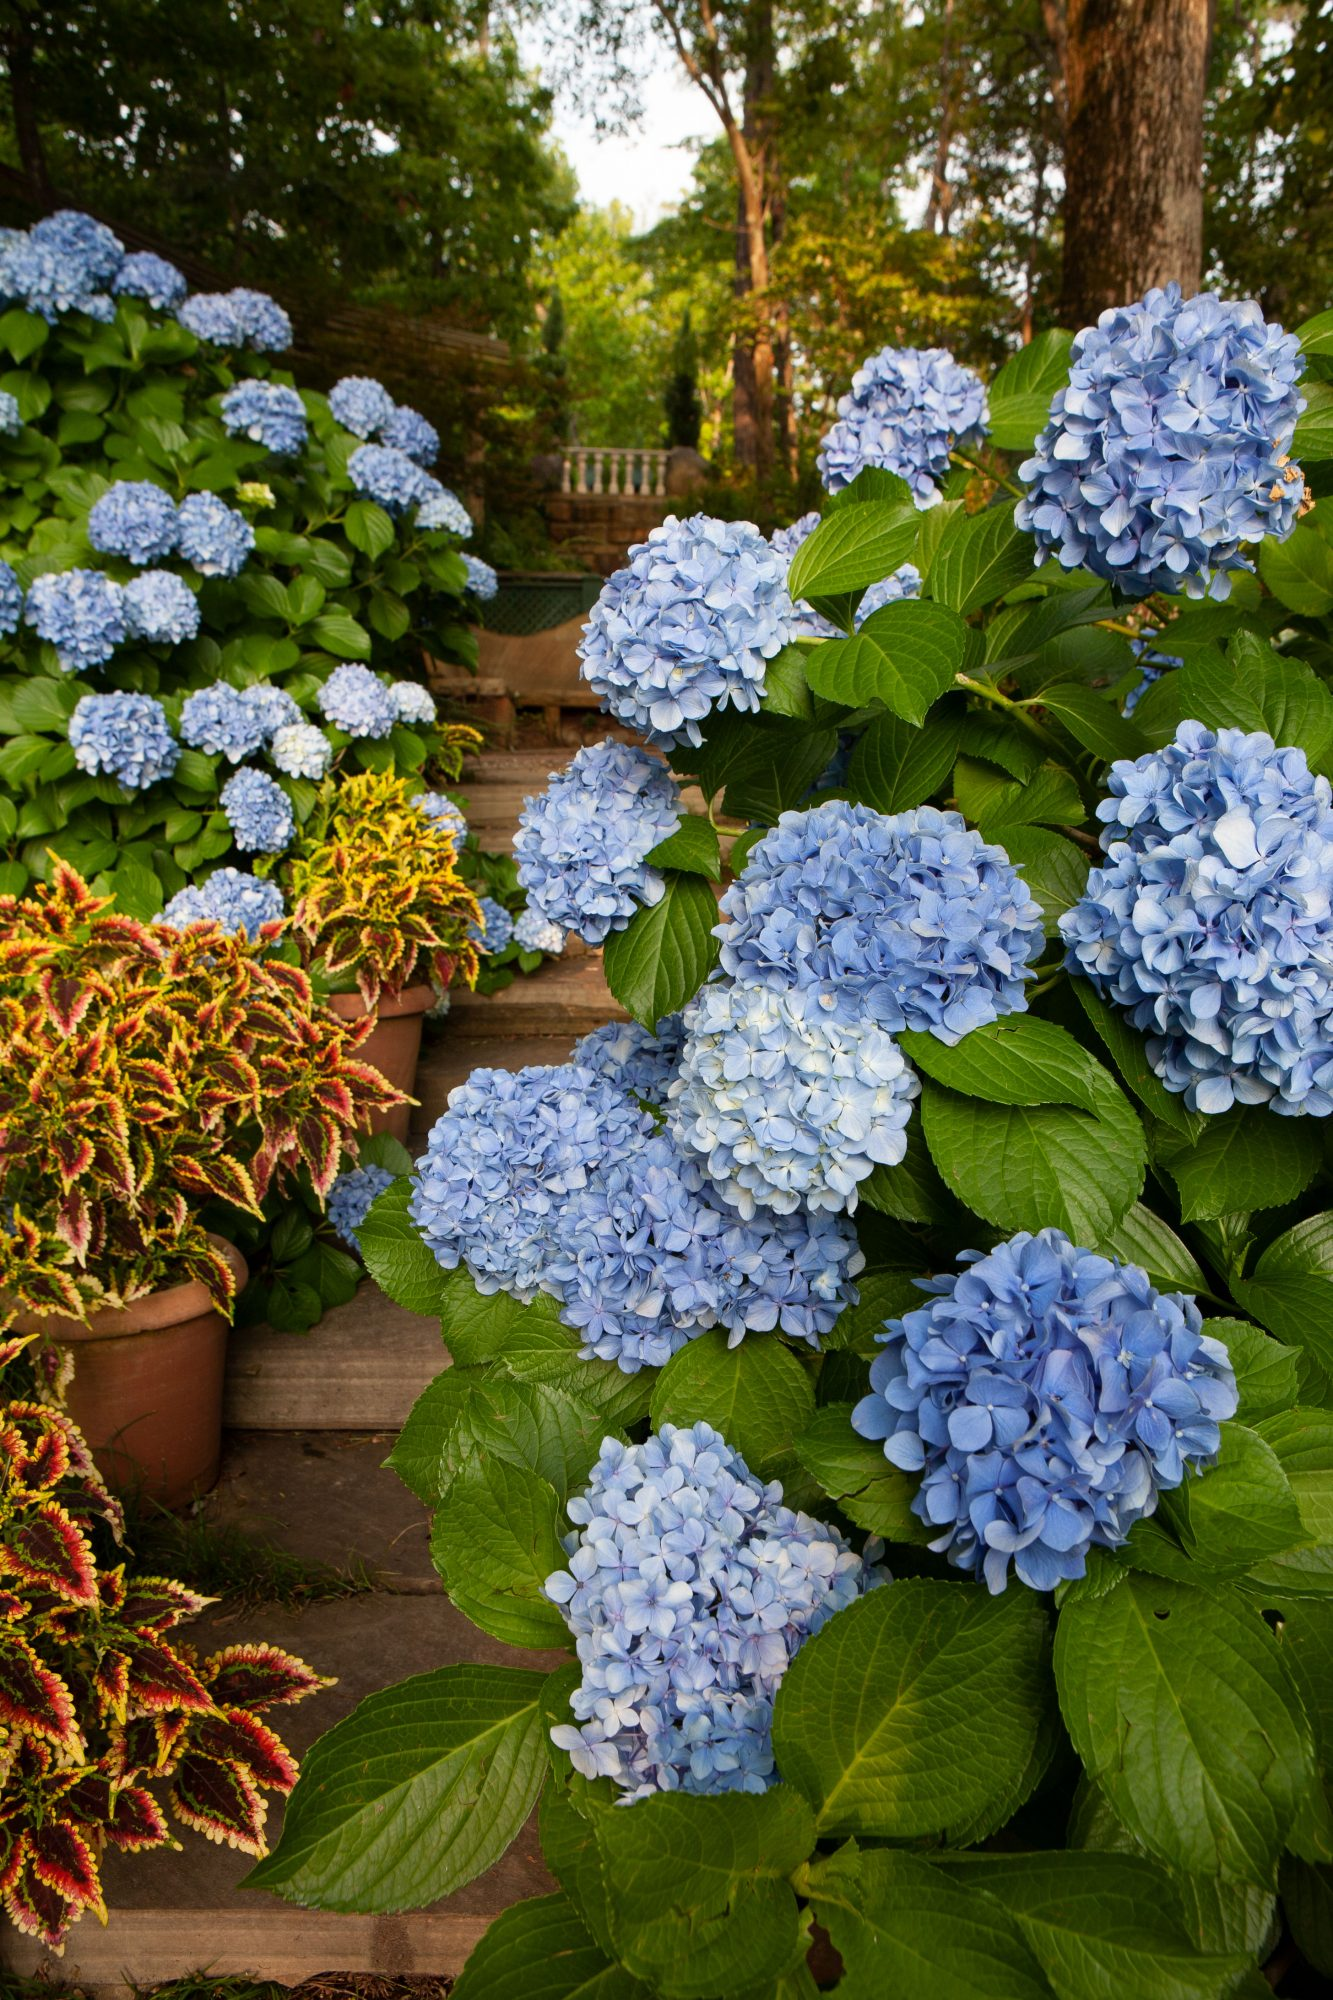 Blue blooming hydrangea bushes along stone stairs with coleus in planters